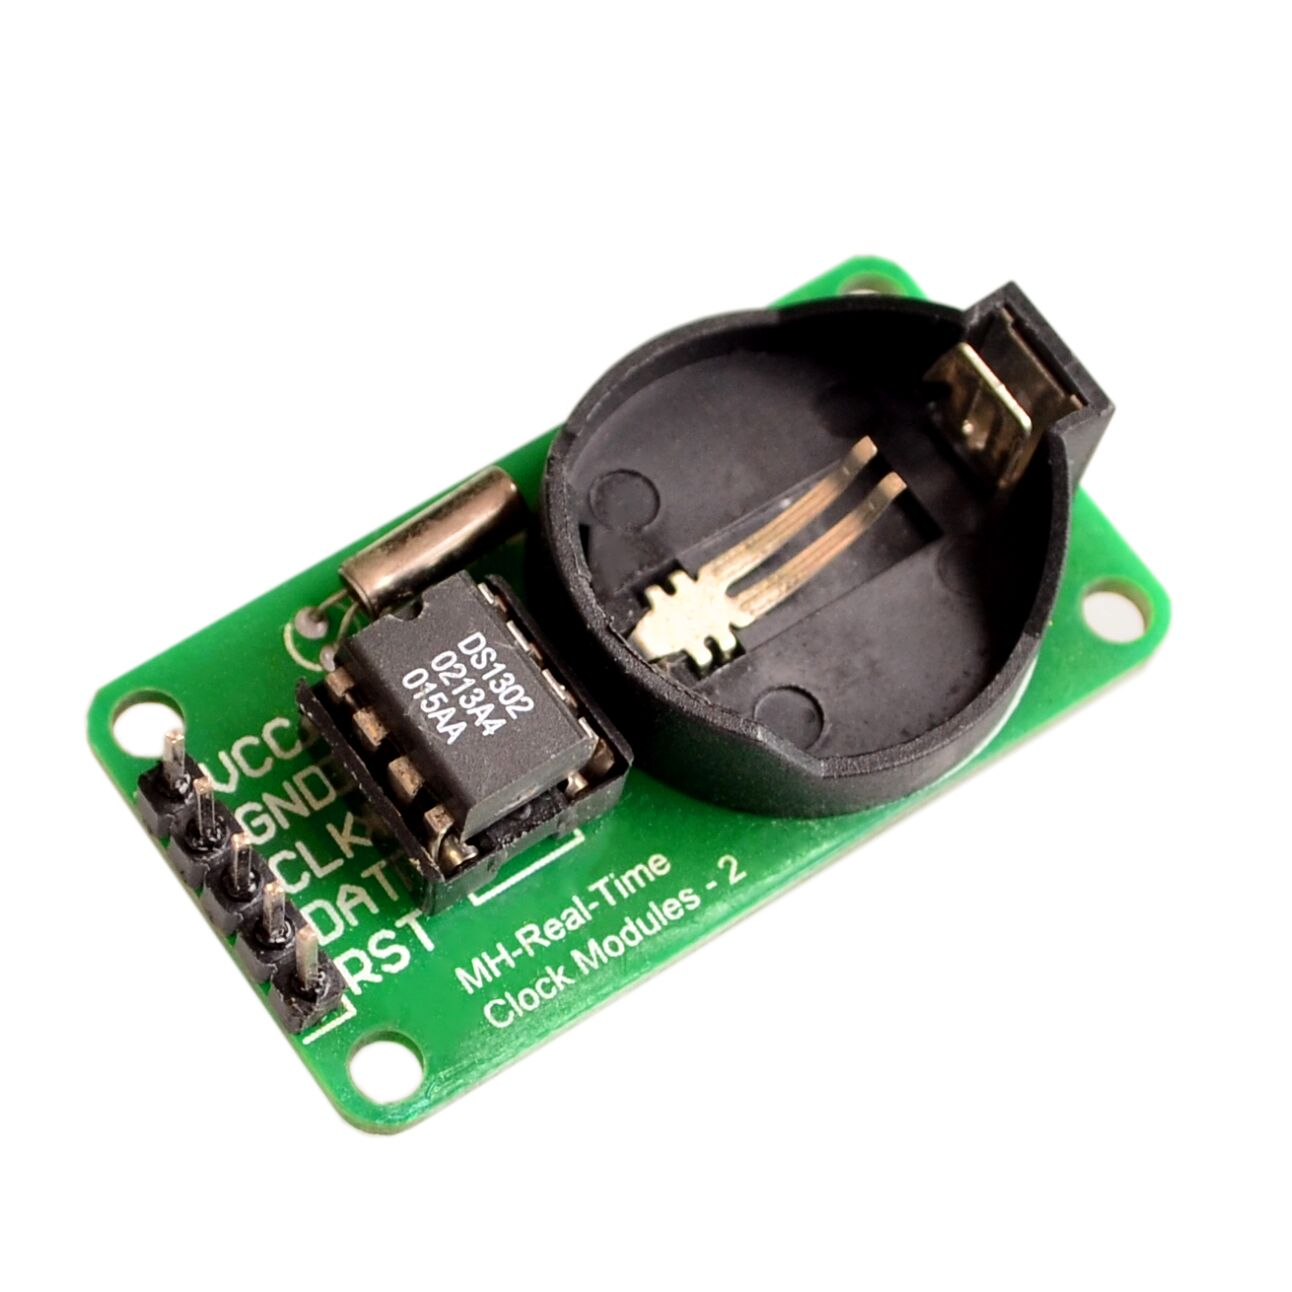 1 teile/los DS1302 <font><b>Real</b></font> Time Clock Module mit CR2032 Taste Batterie 31x8 RAM image